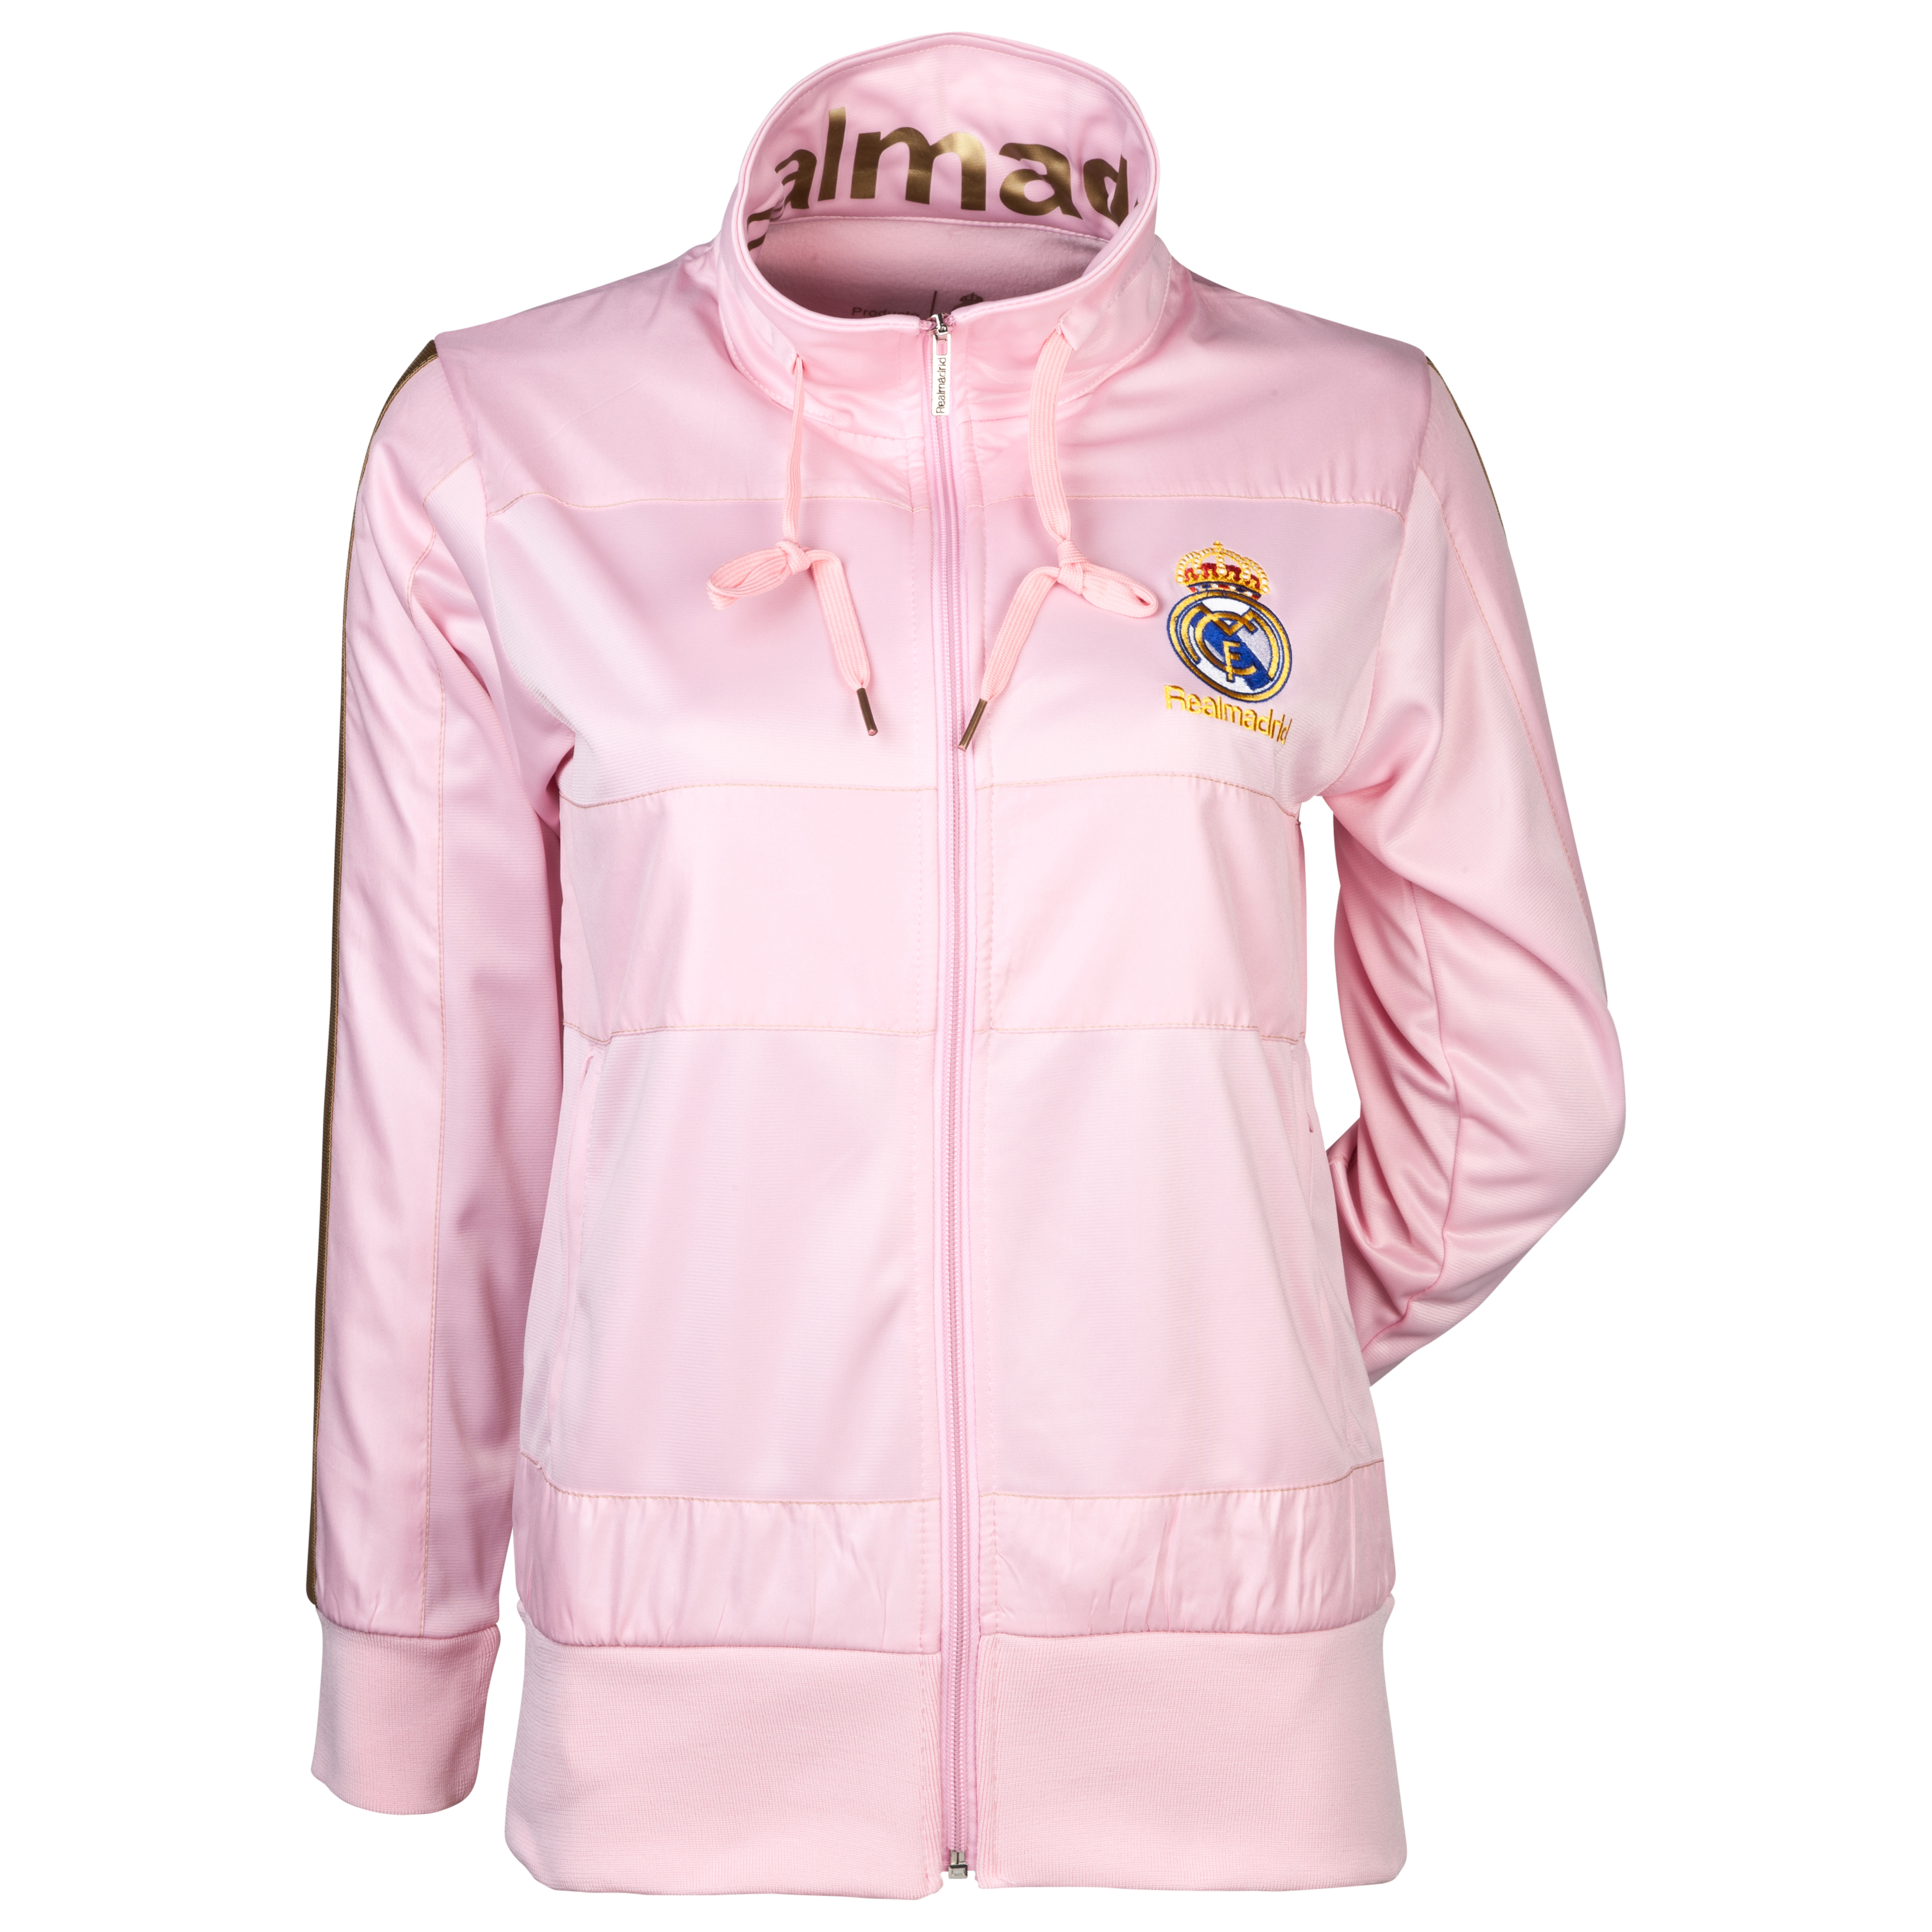 Real Madrid Track Jacket - Pink - Womens